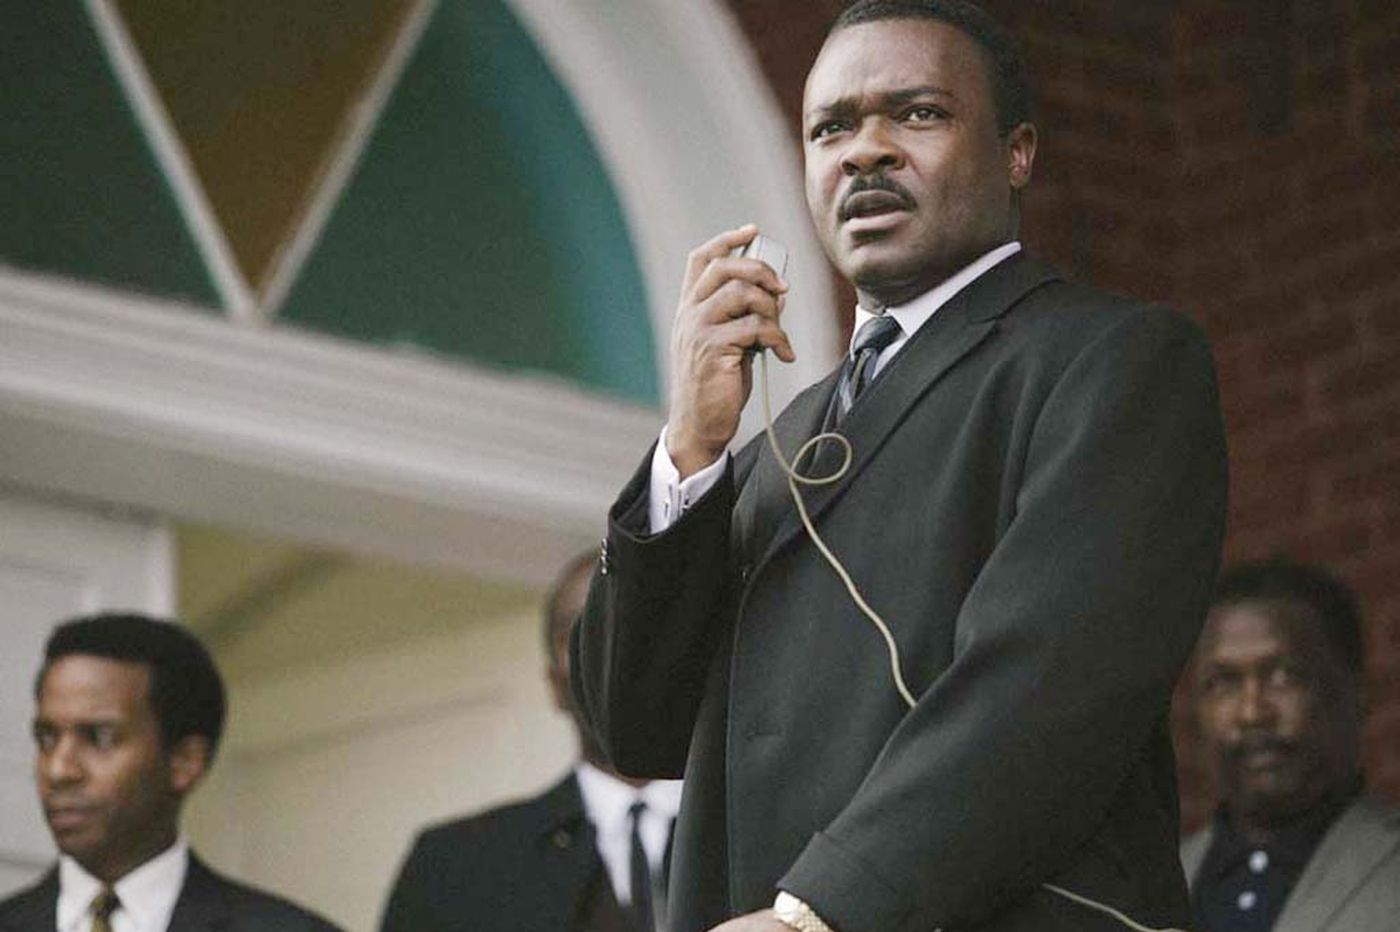 'Selma': A clear sense of the mission and the man